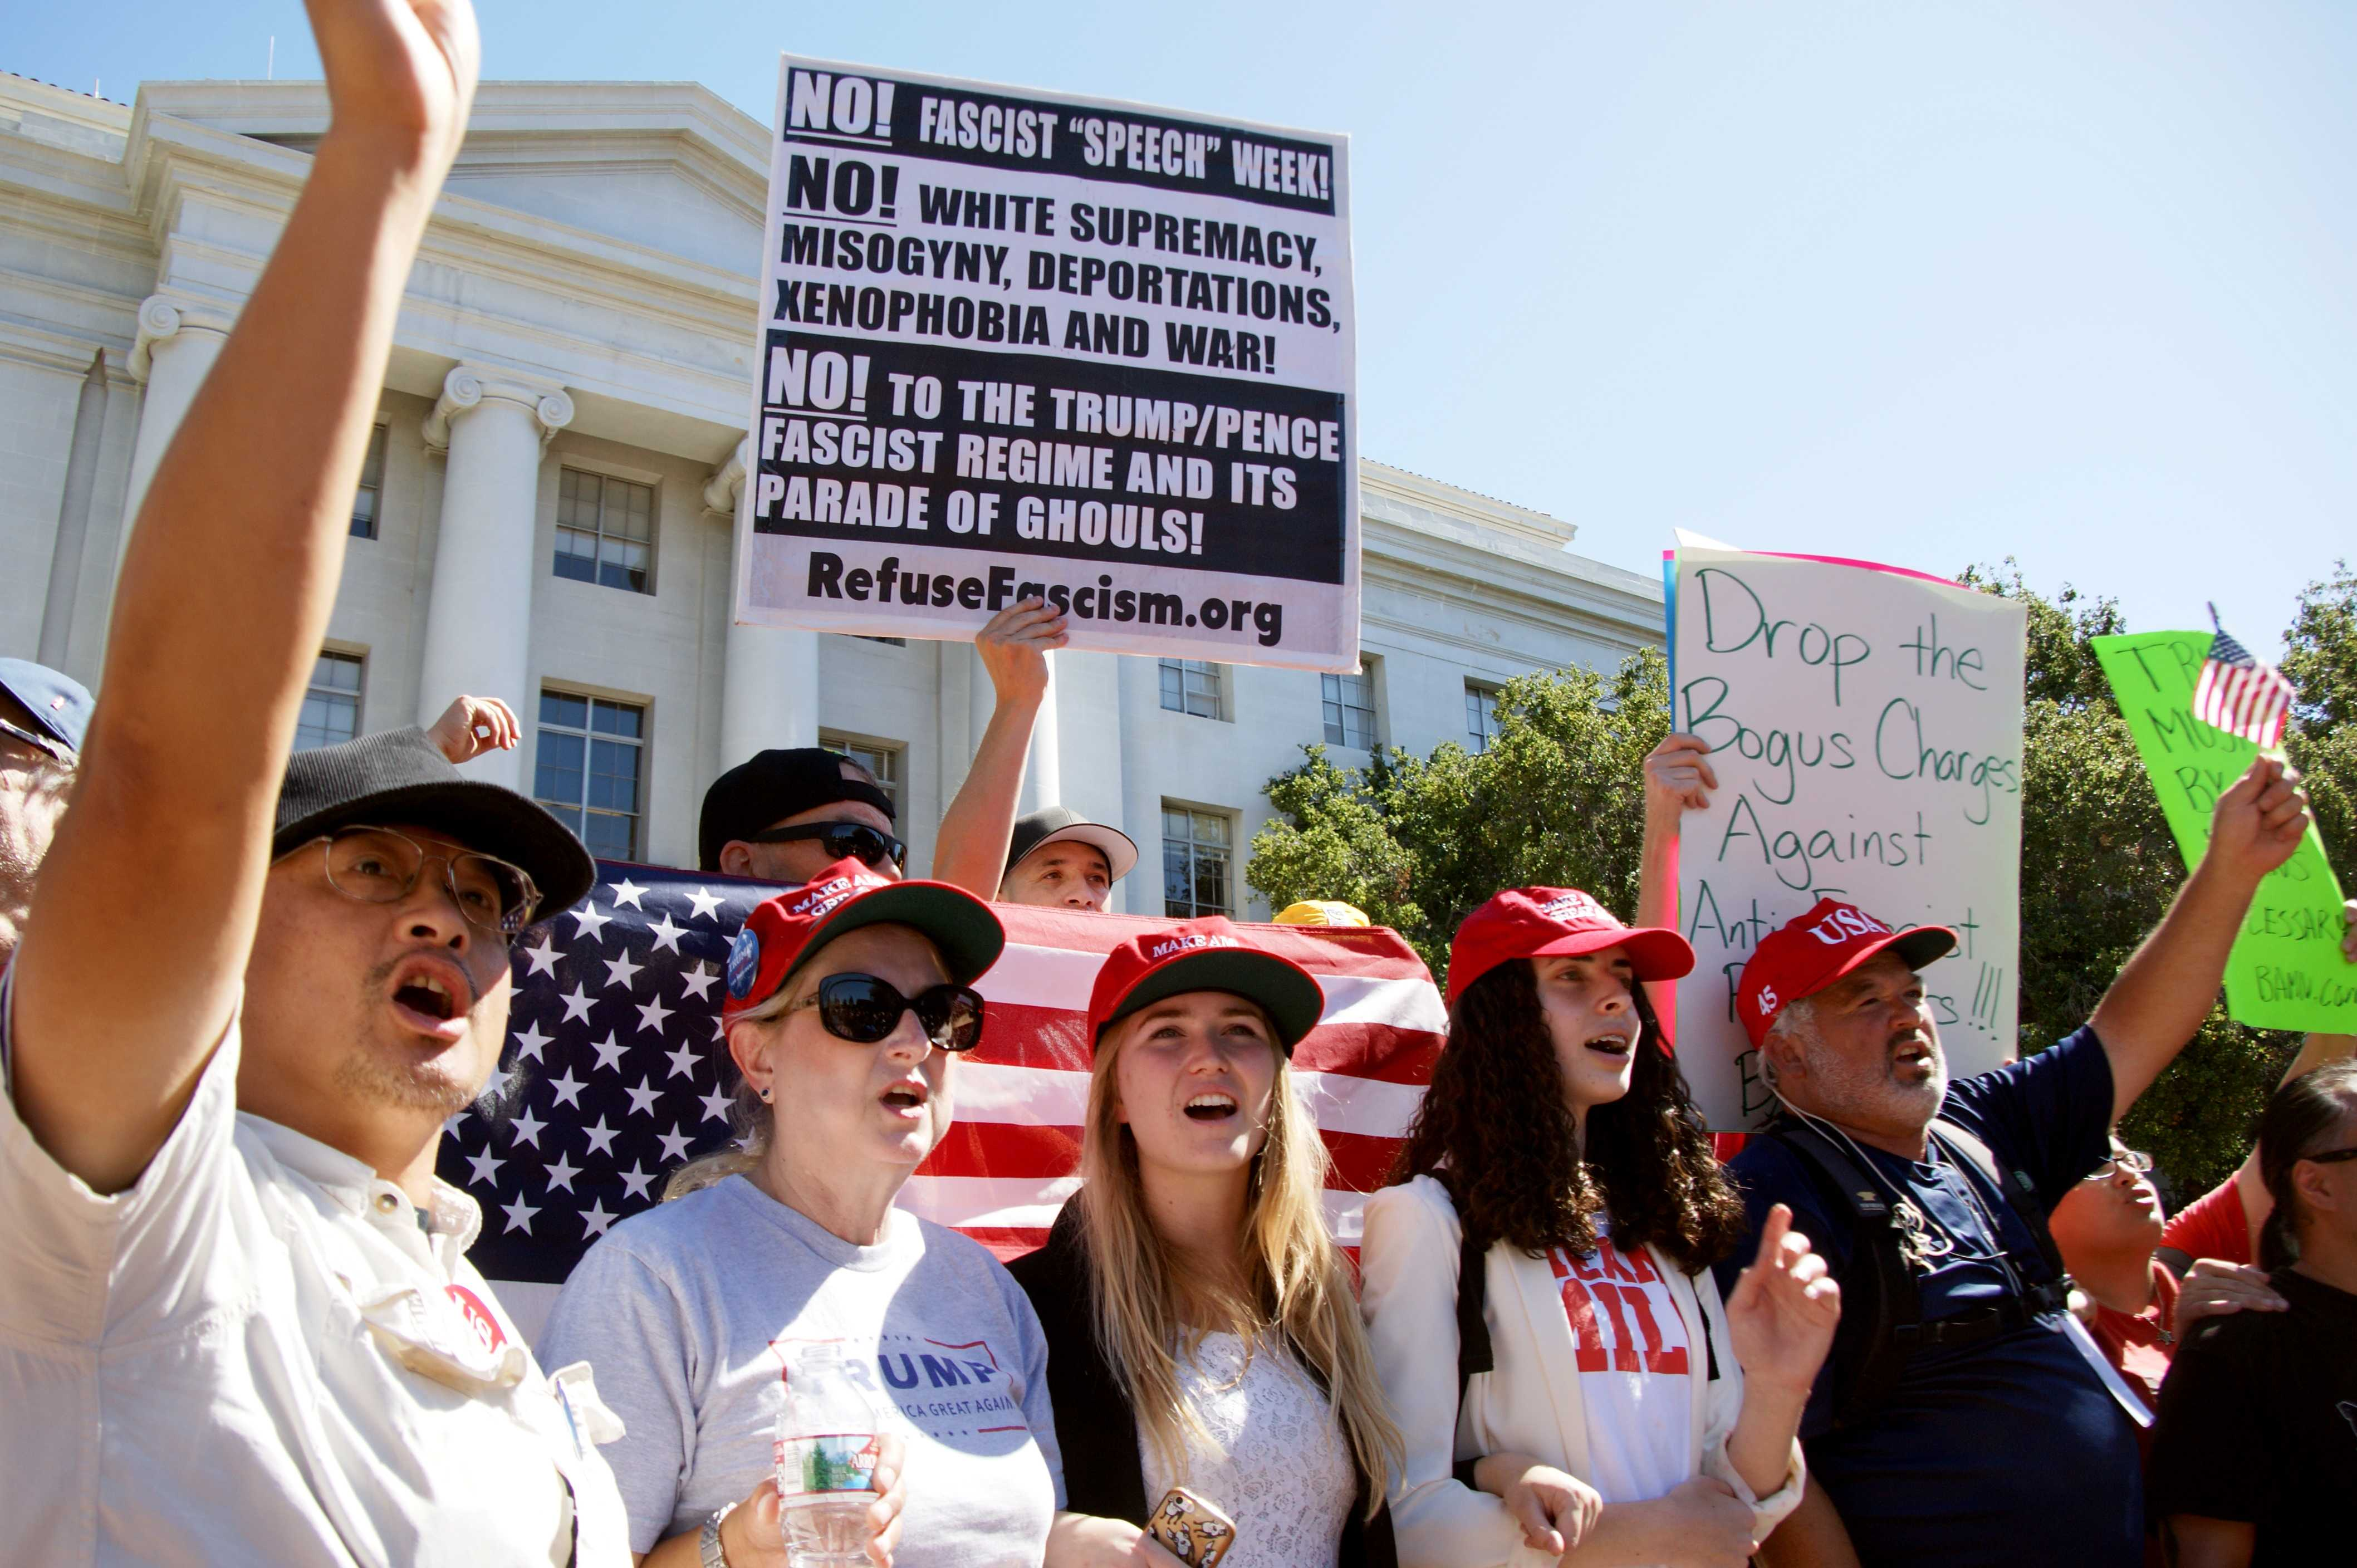 Trump supporters stand in front of anti-fascism protesters during a free speech rally at UC Berkeley, Wednesday, Sept. 27, 2017. (Aya Yoshida/Golden Gate Xpress)